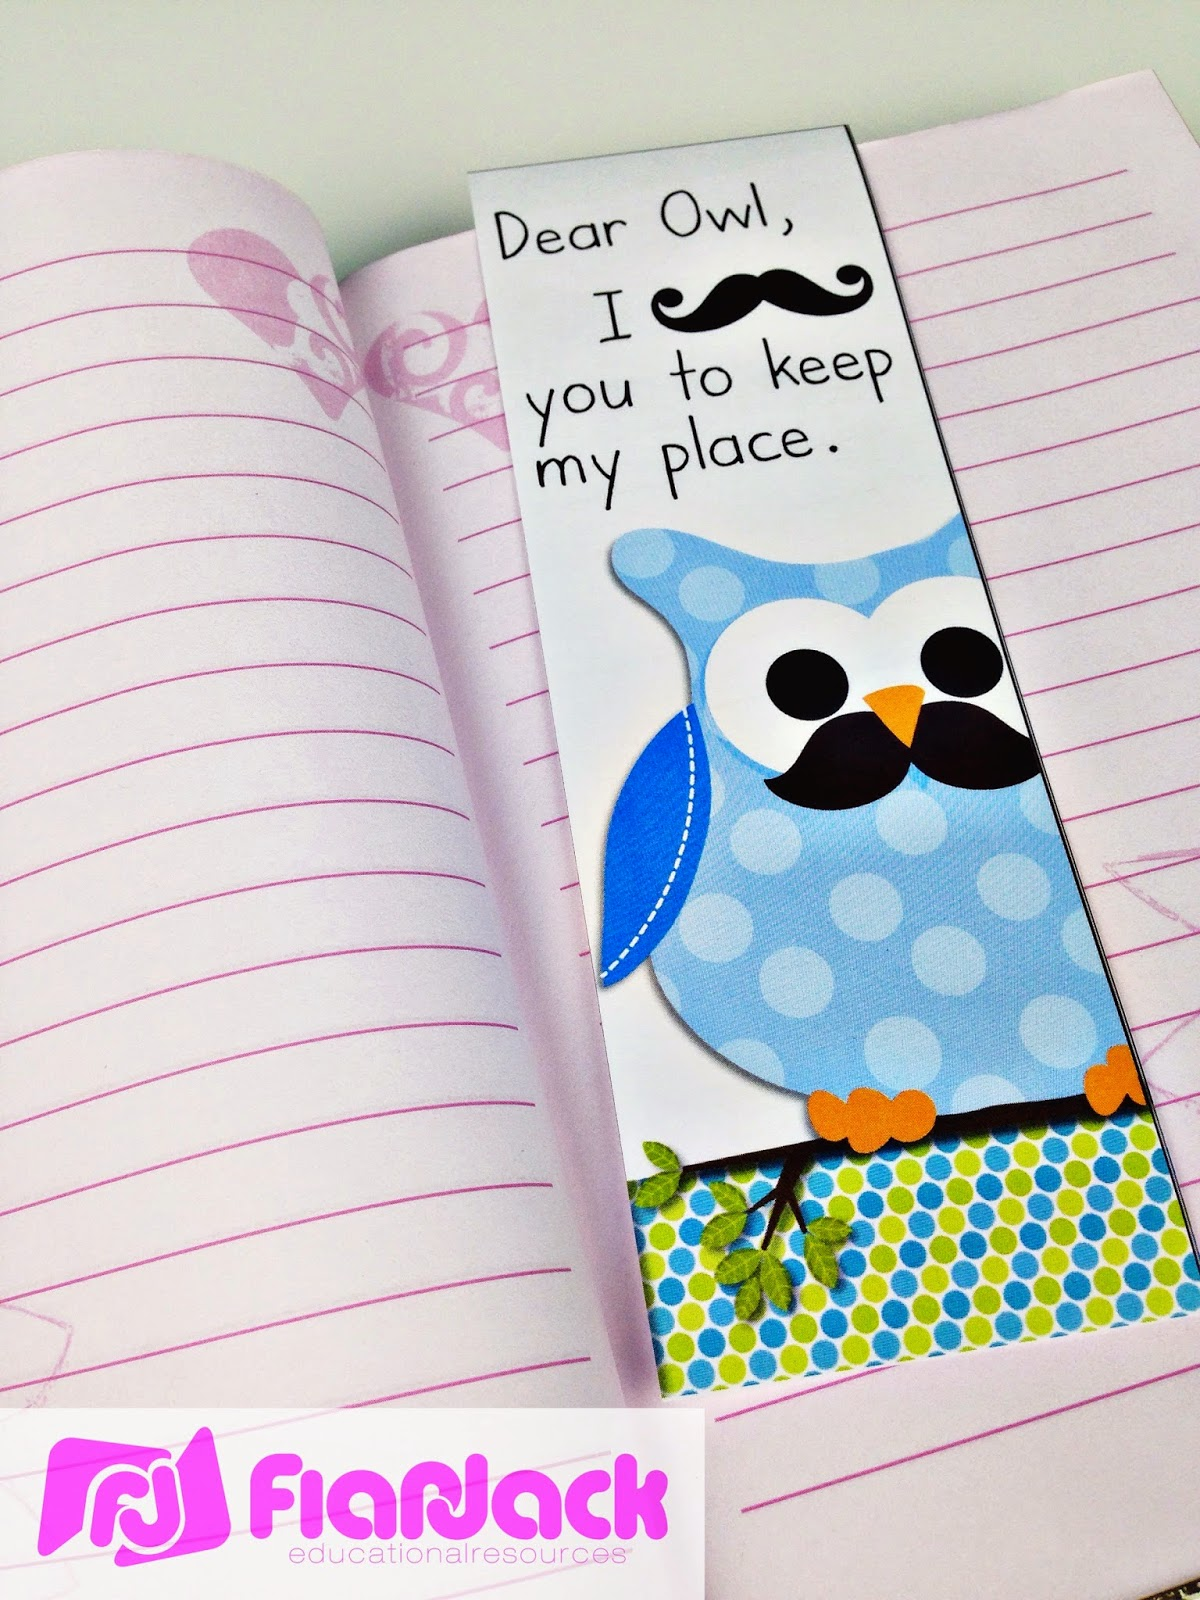 Classroom Decoration Freebies ~ Mustache freebies bookmark ideas and classroom decor pack